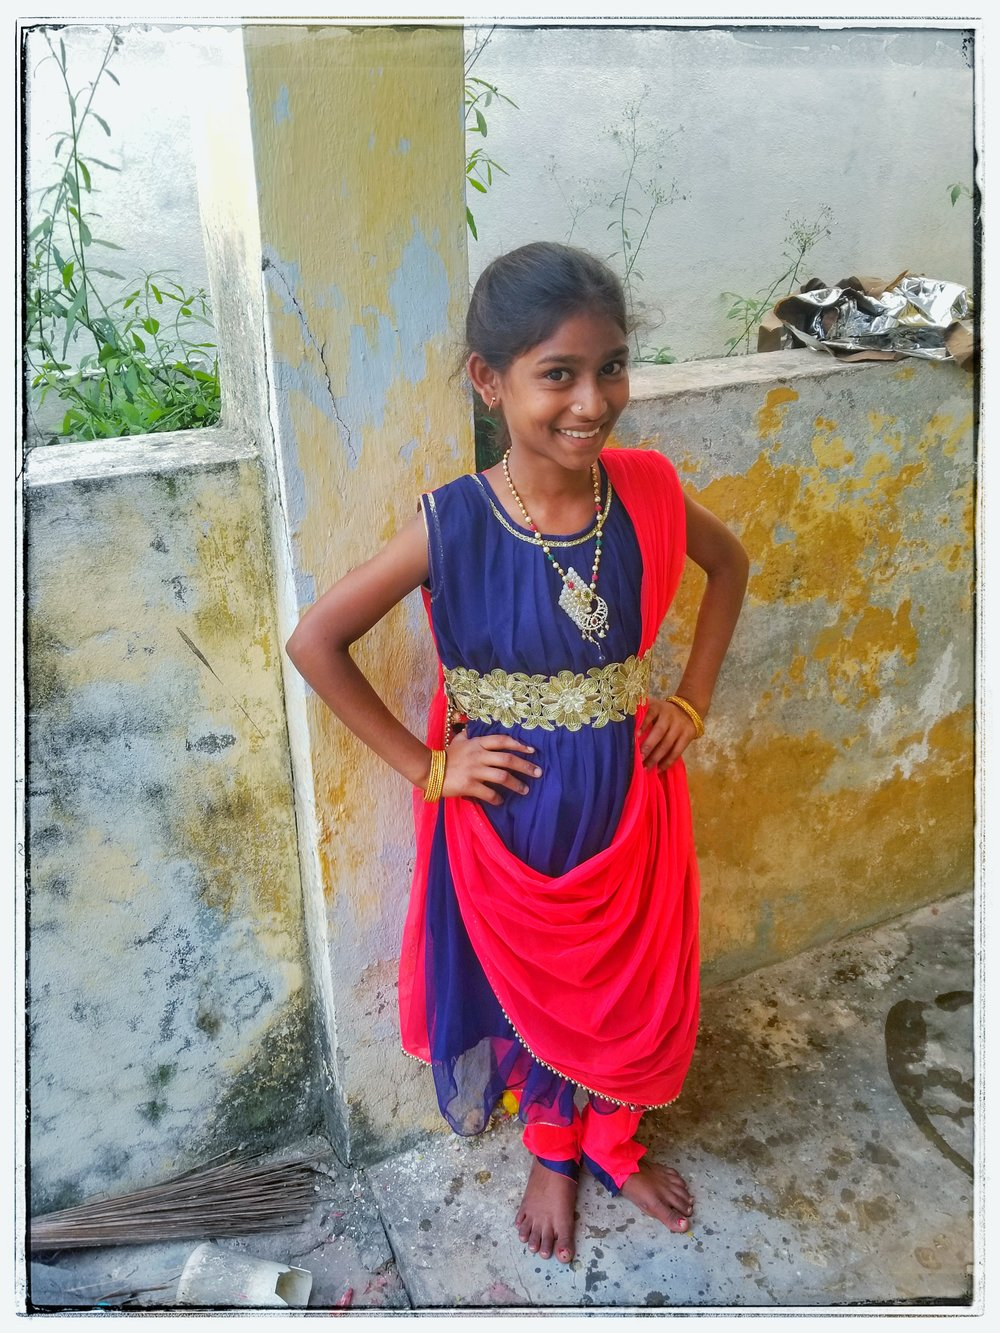 Orphan girl in India with saree.